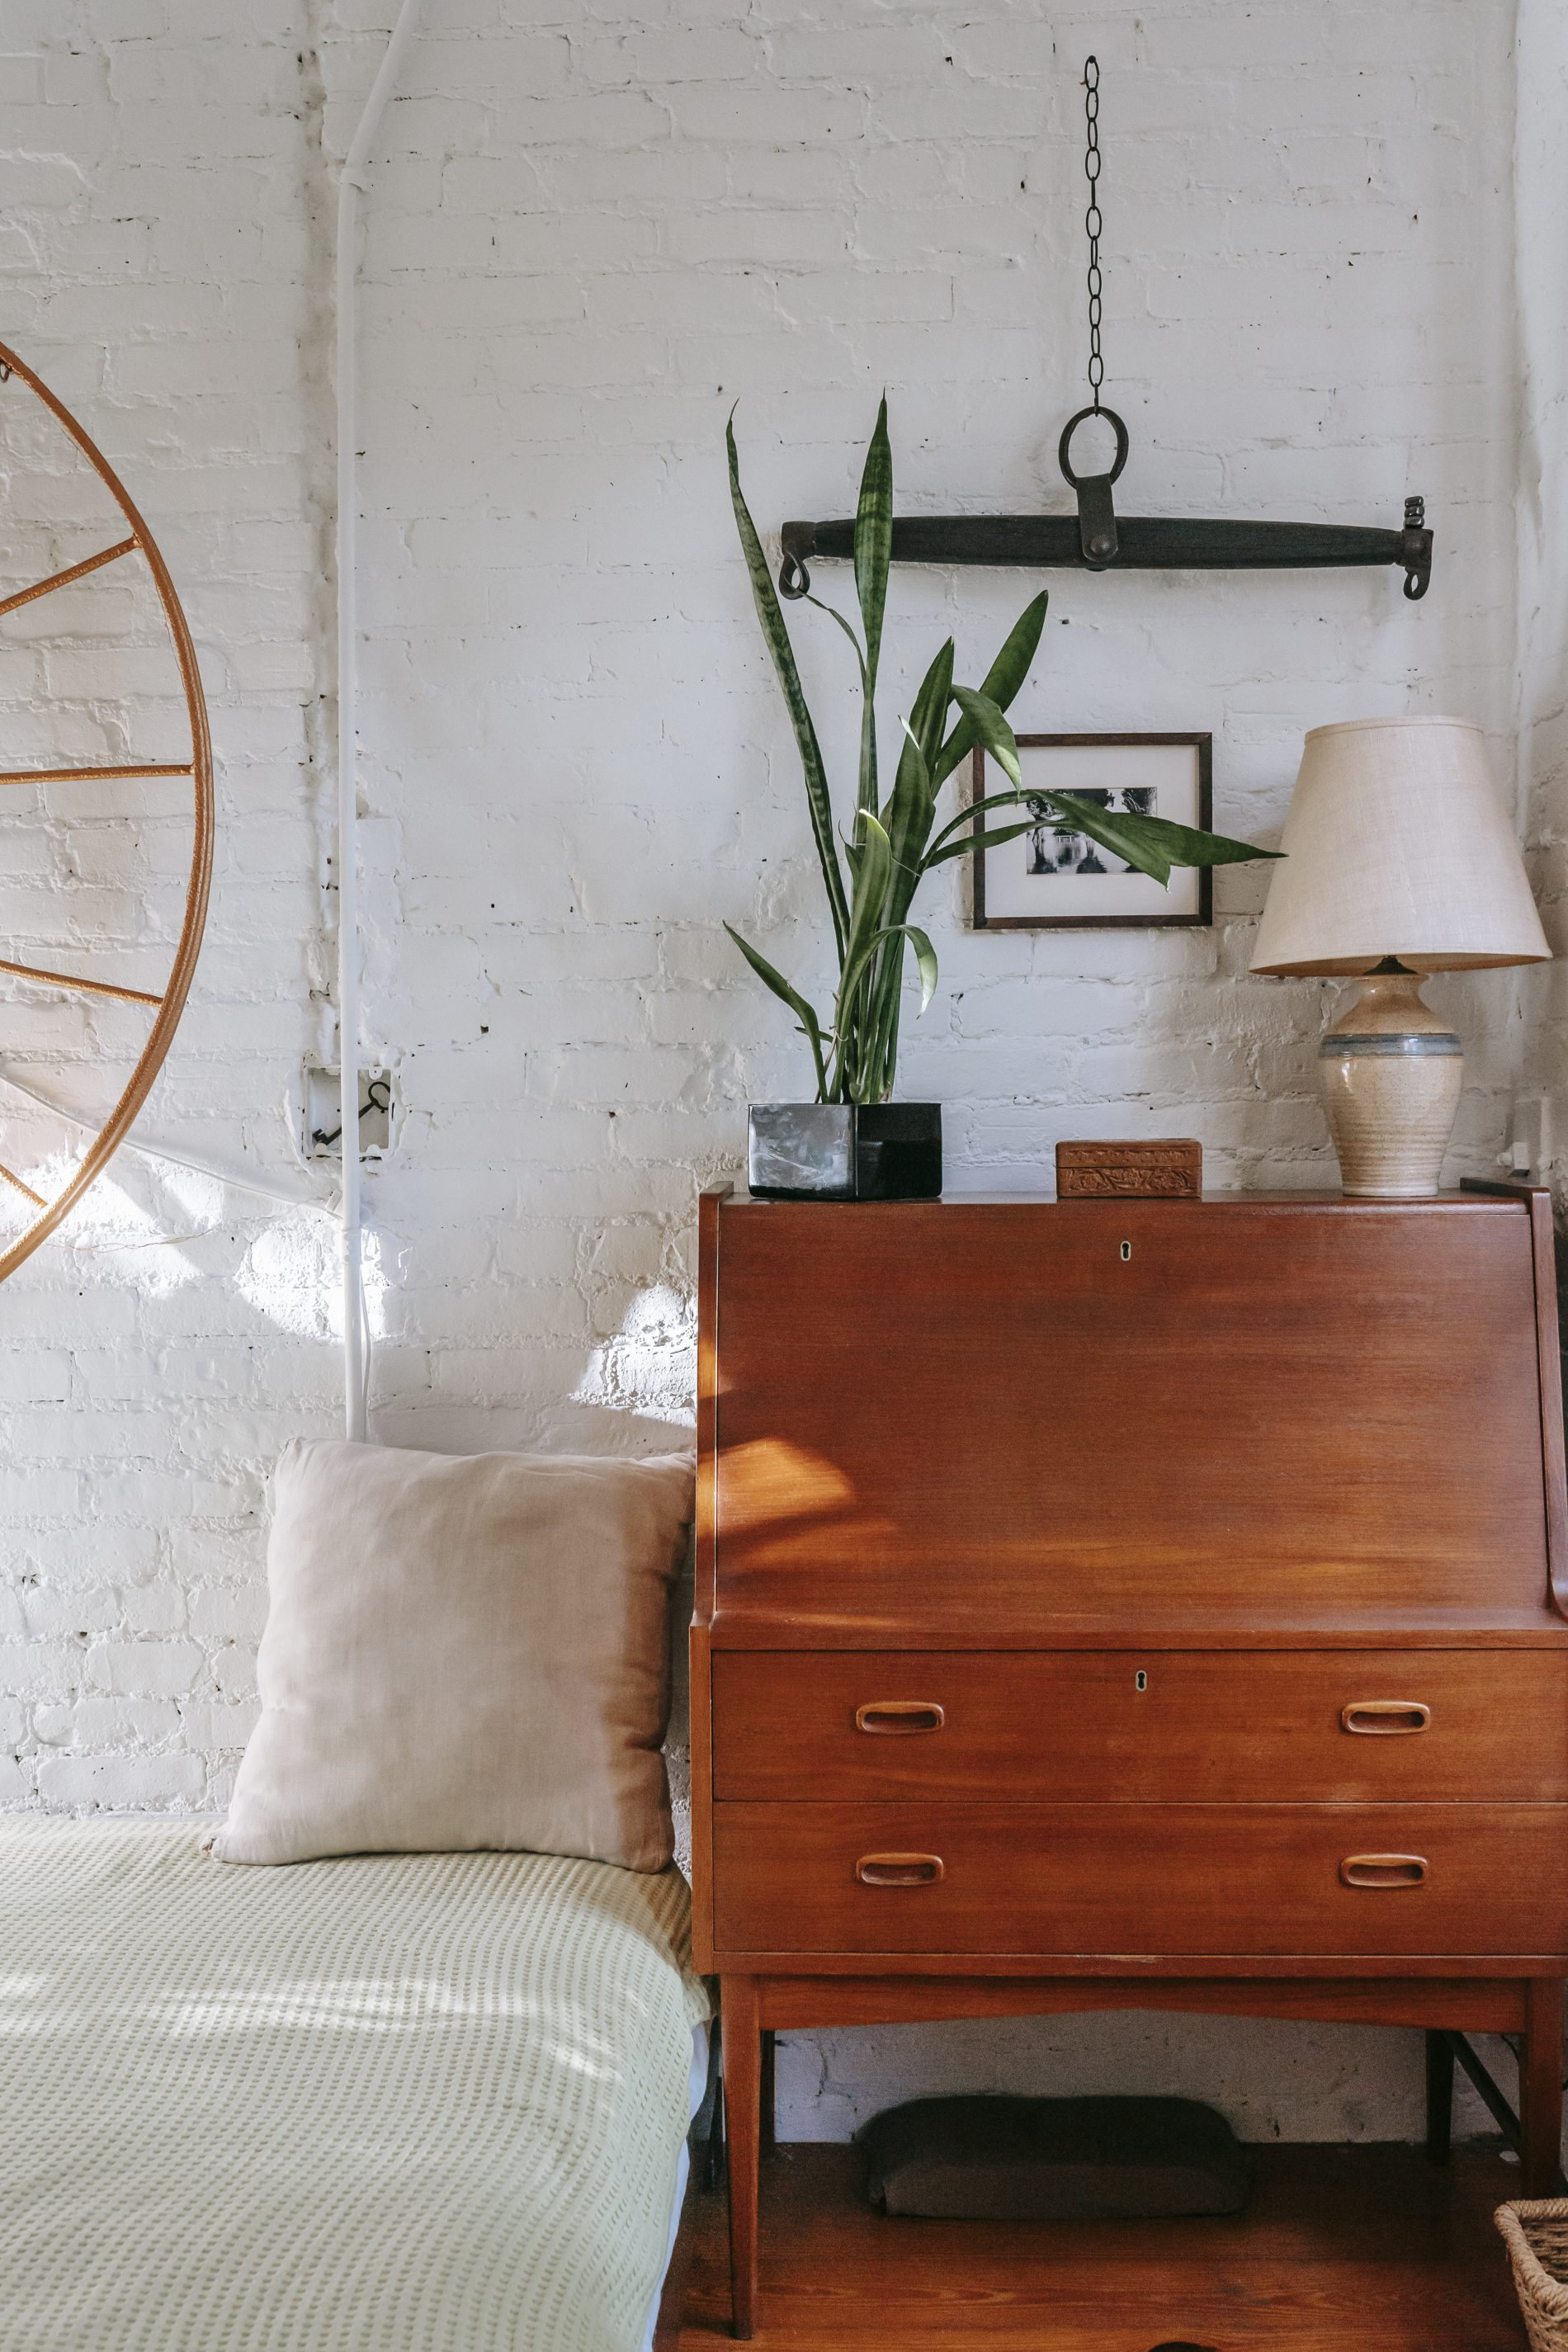 Retro cabinet with potted plant near comfy bed